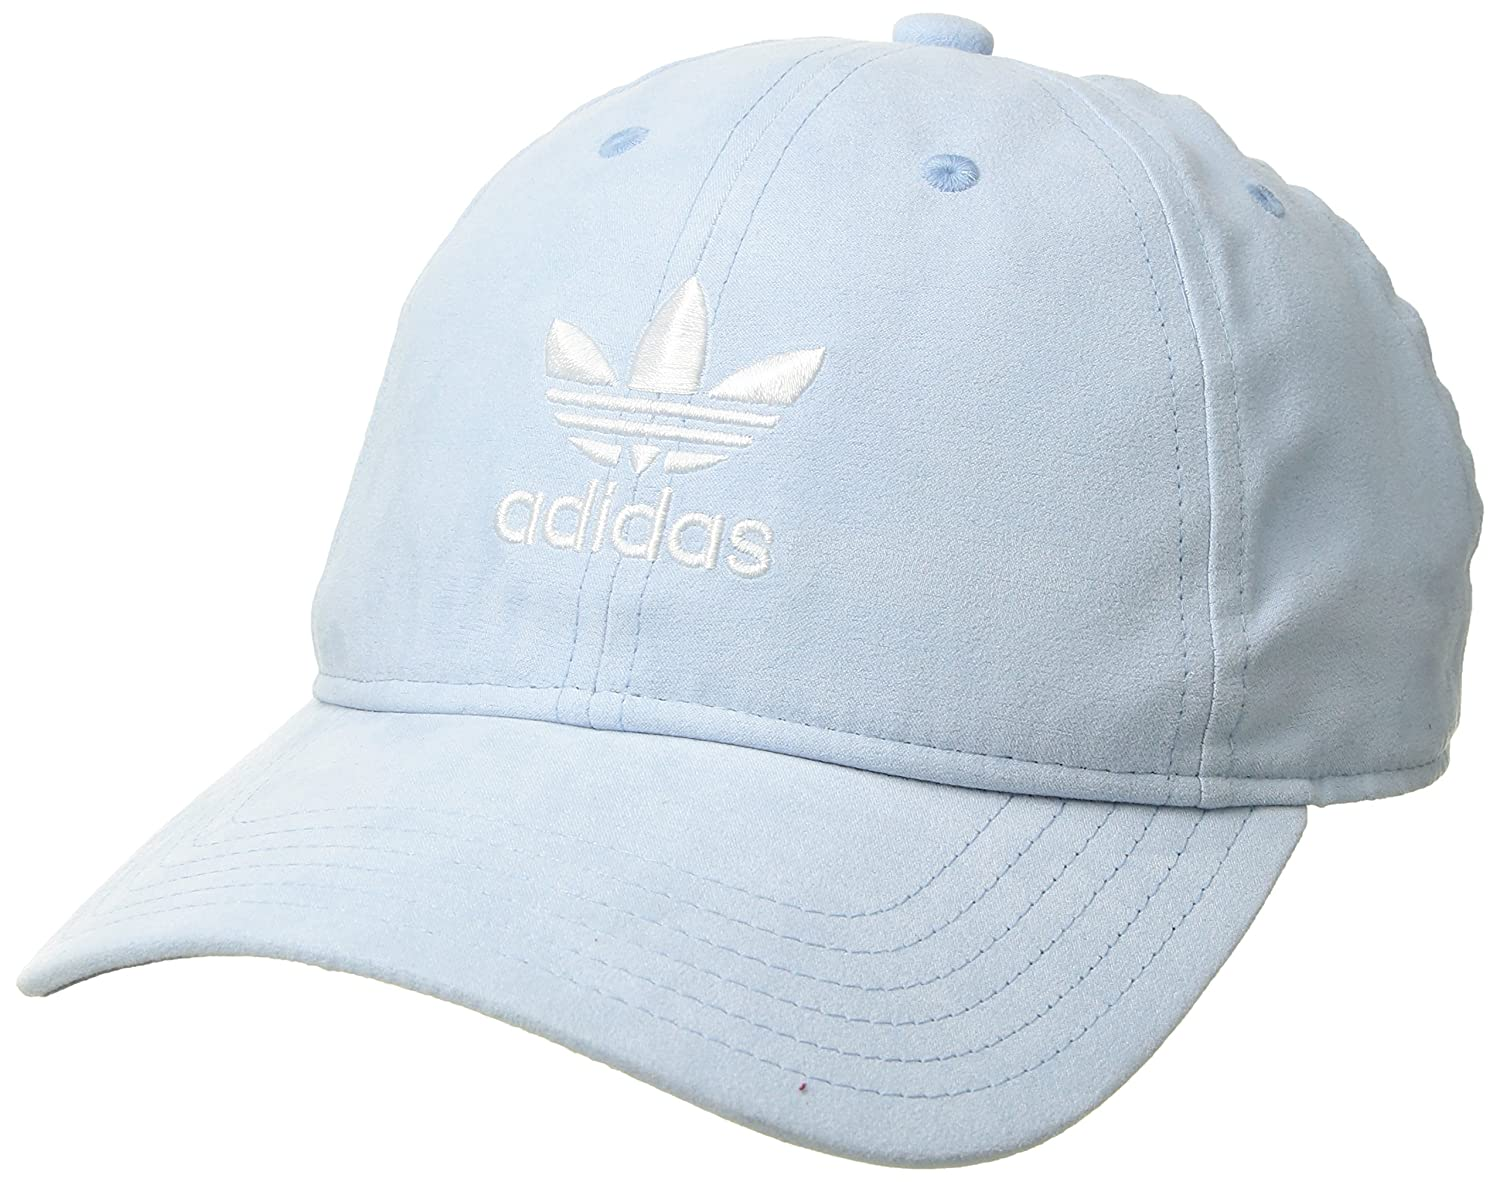 8322a3a0 Amazon.com: adidas Women's Originals Relaxed Plus Adjustable Strapback Cap,  Aero Blue Suede/White, One Size: Clothing